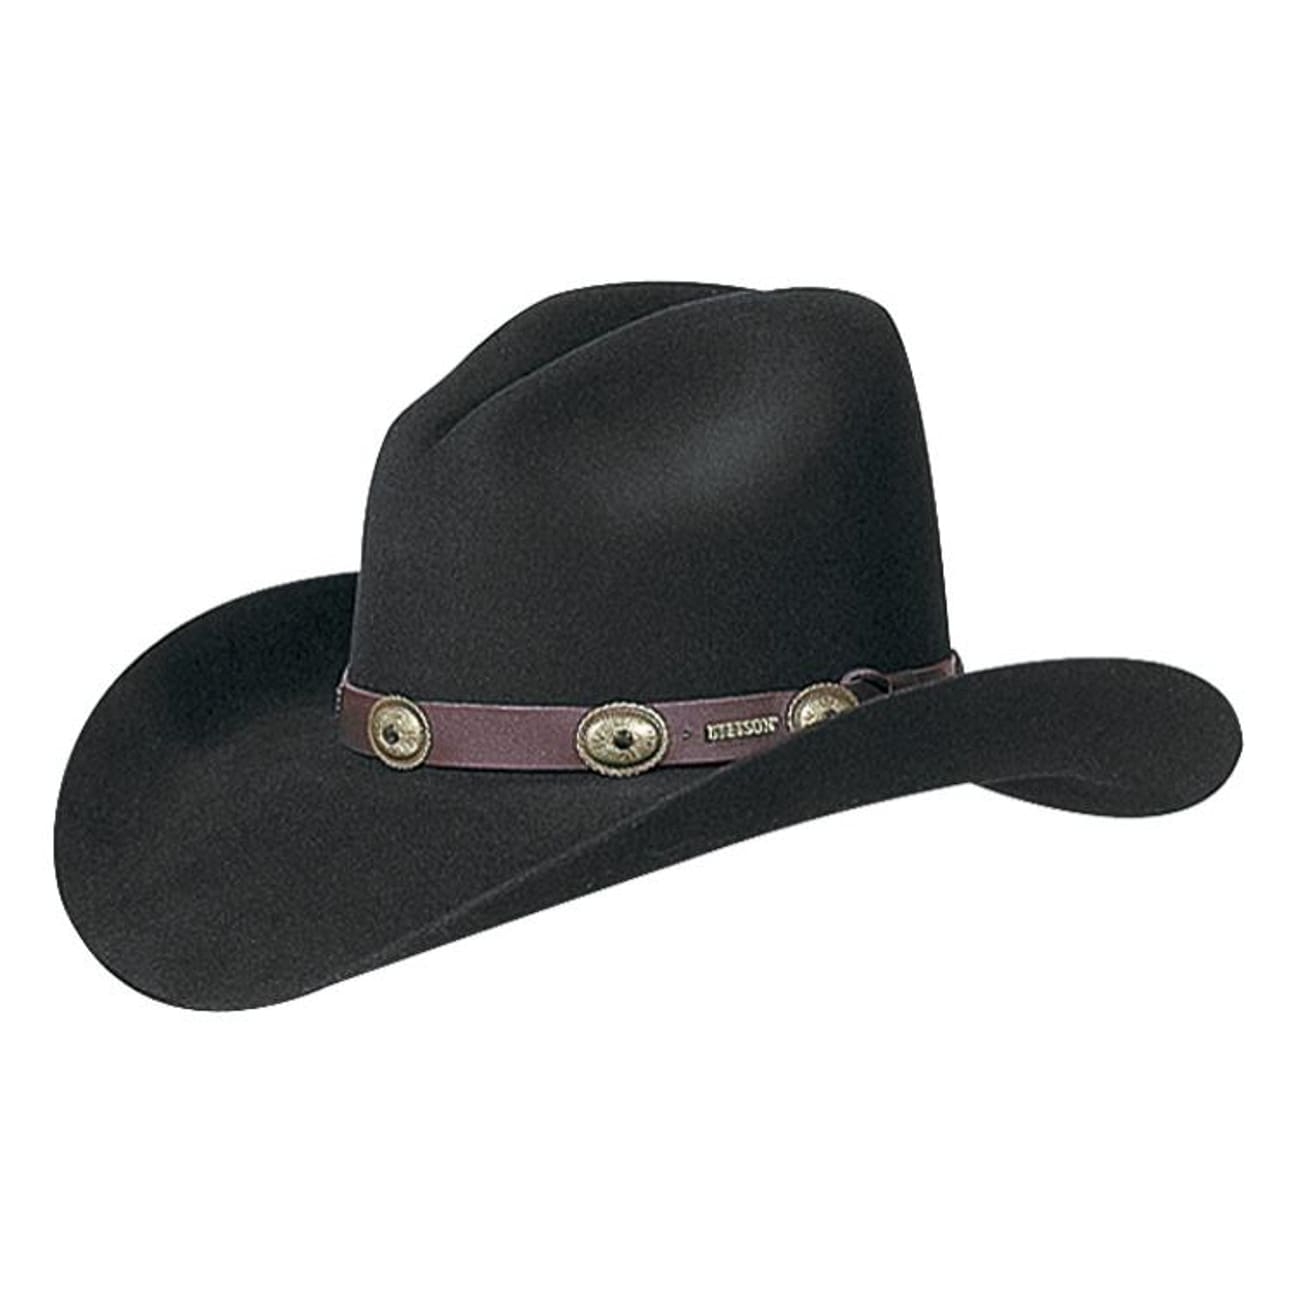 Tombstone Cowboy Hat by Stetson - black 1 2c2b105c06b